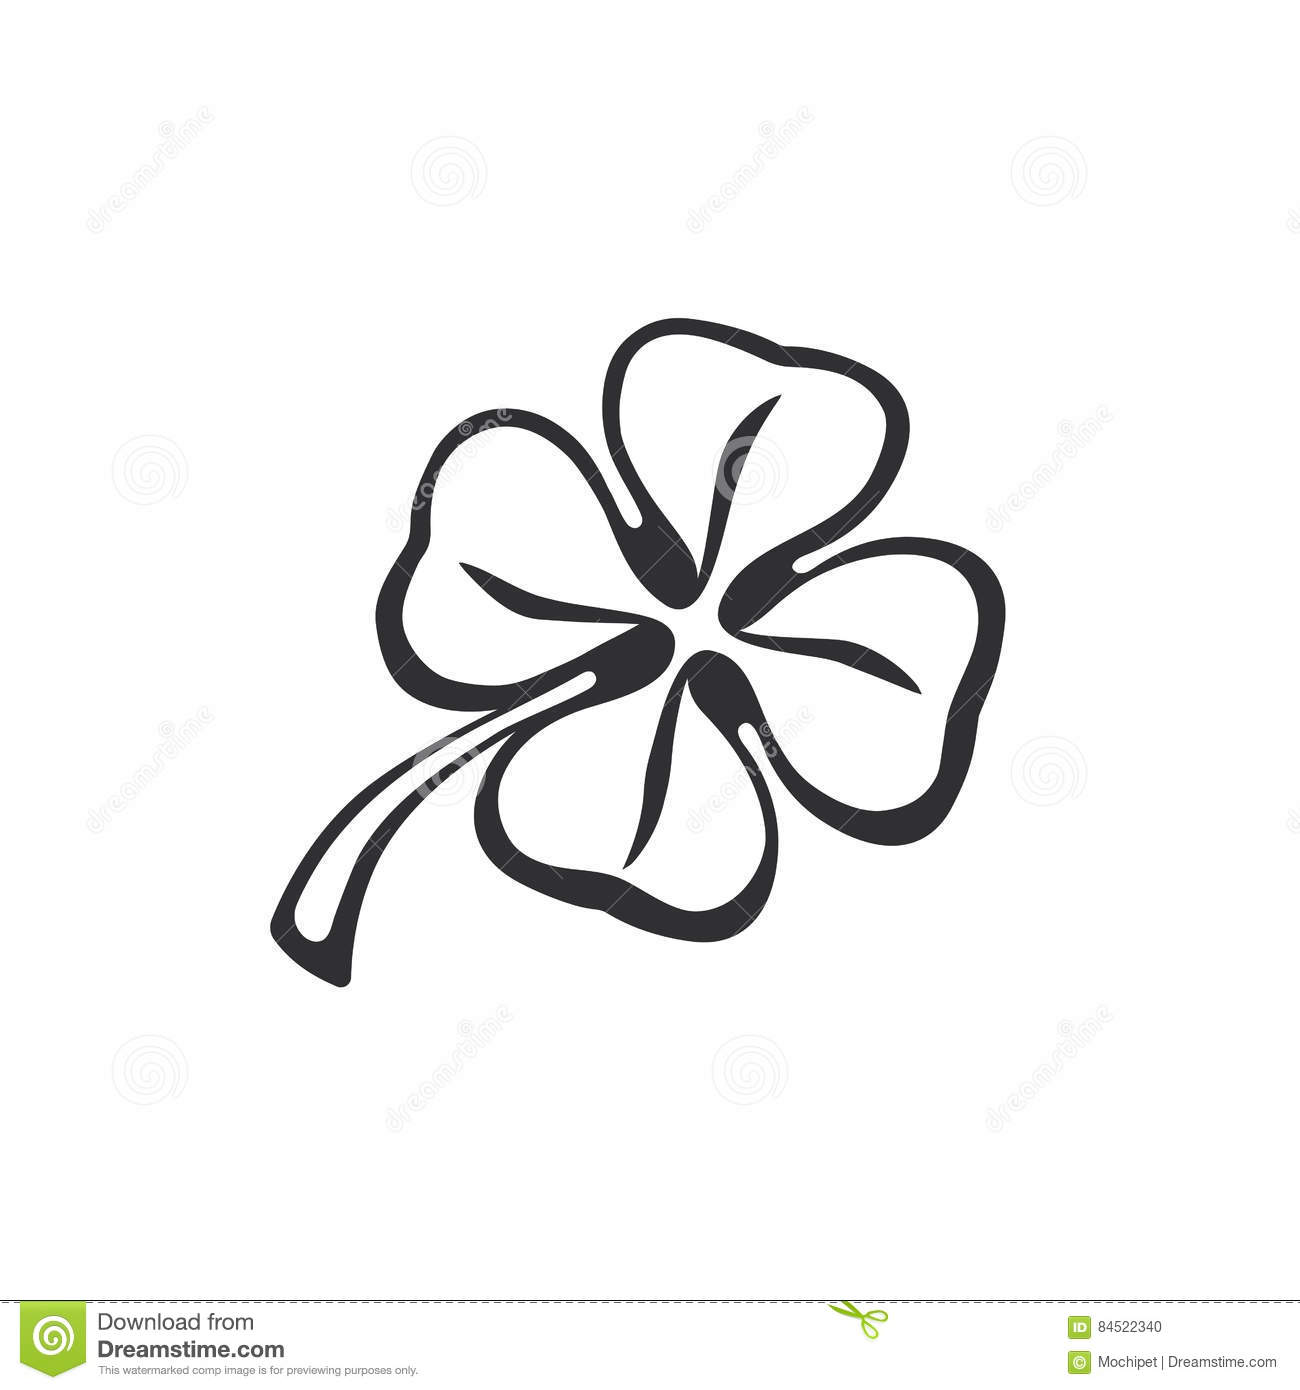 Doodle Of Clover Stock Vector Illustration Of Emblem